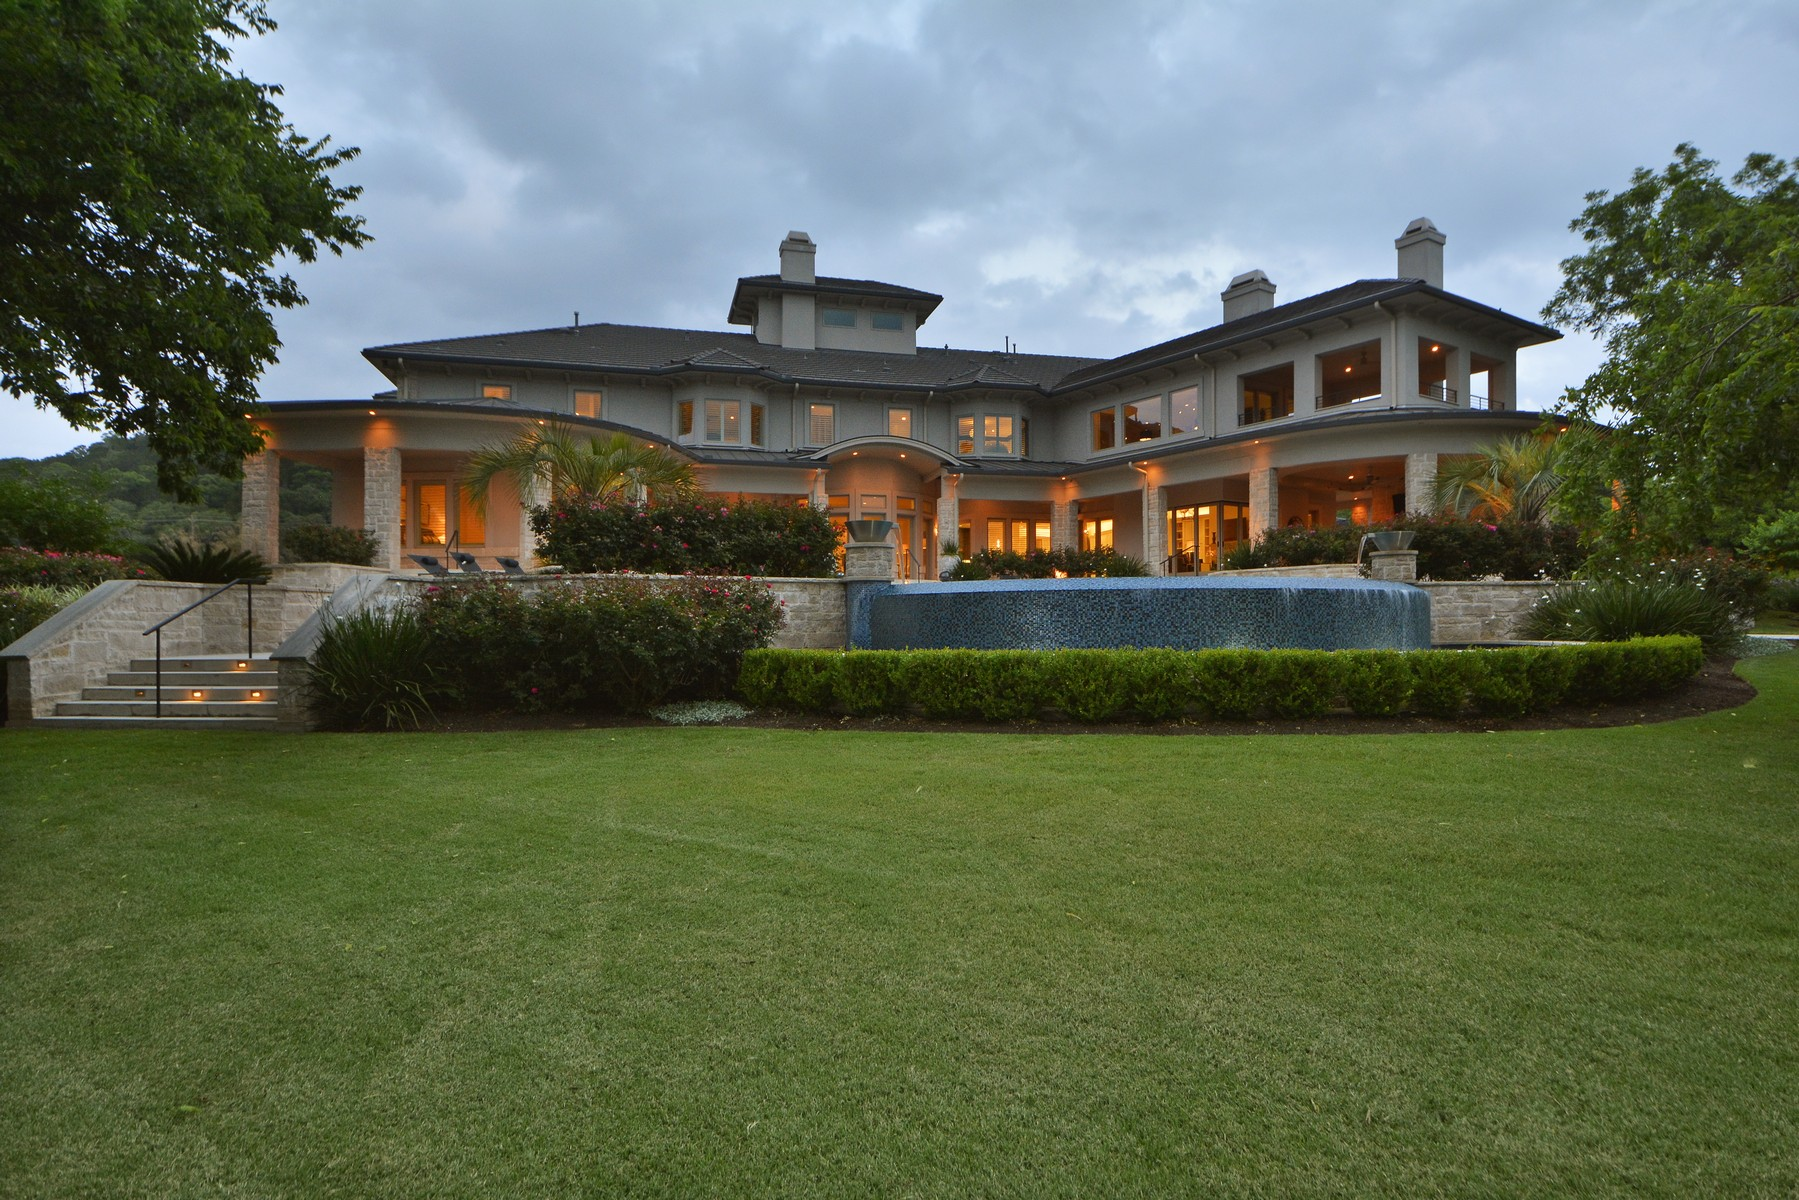 Additional photo for property listing at Modern 6.8 acre Lake Austin Waterfront Estate 14800 Flat Top Ranch Rd Austin, Texas 78732 Estados Unidos